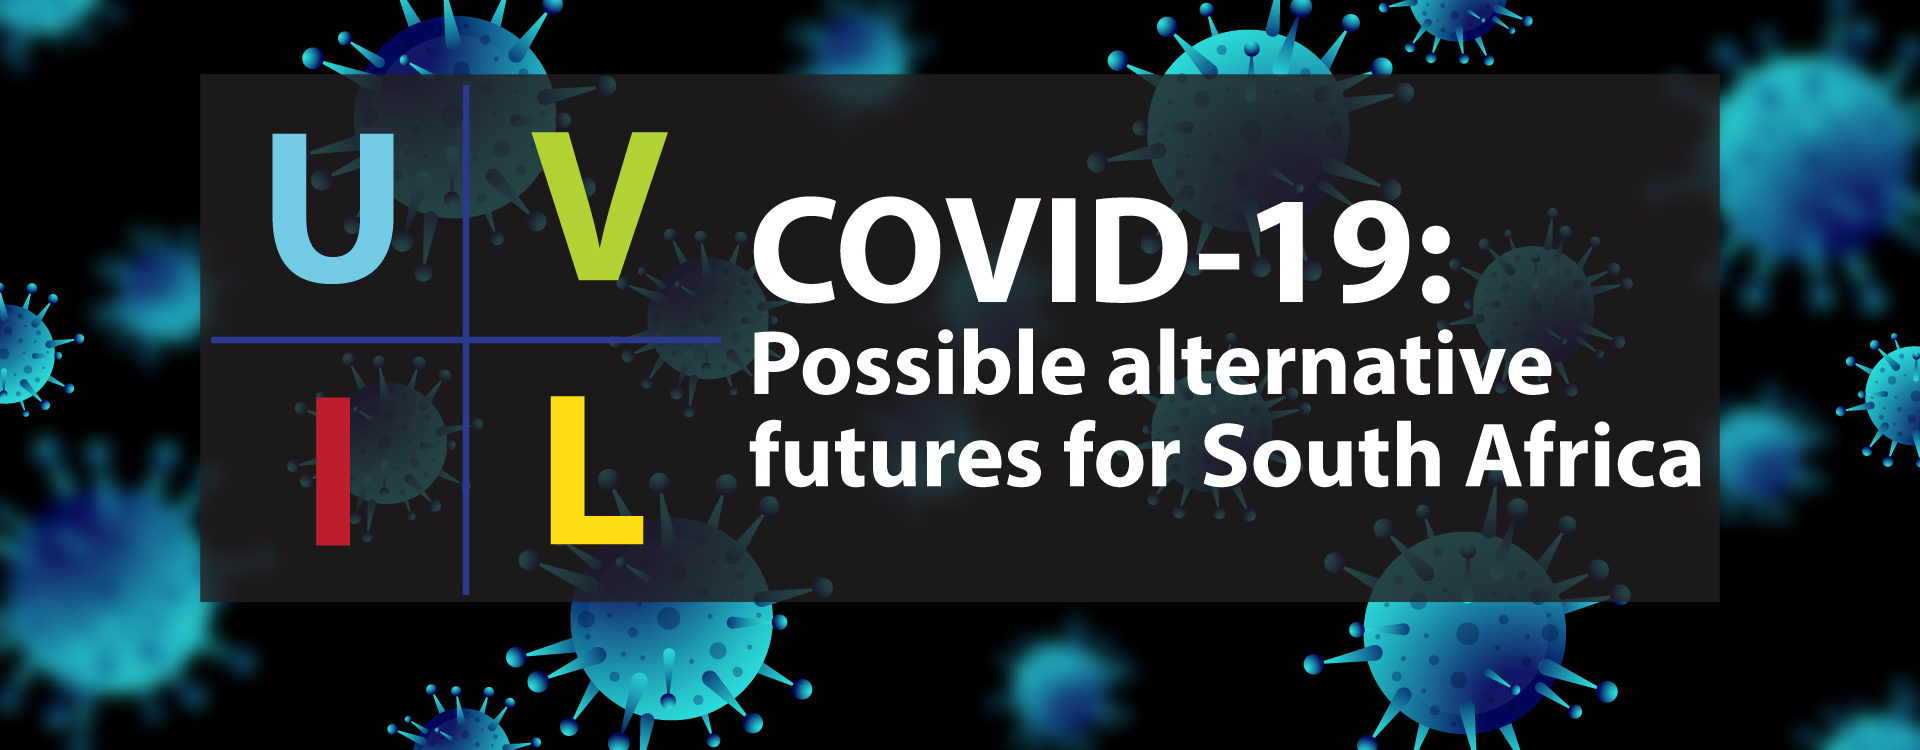 COVID-19 Possible alternative futures for South Africa